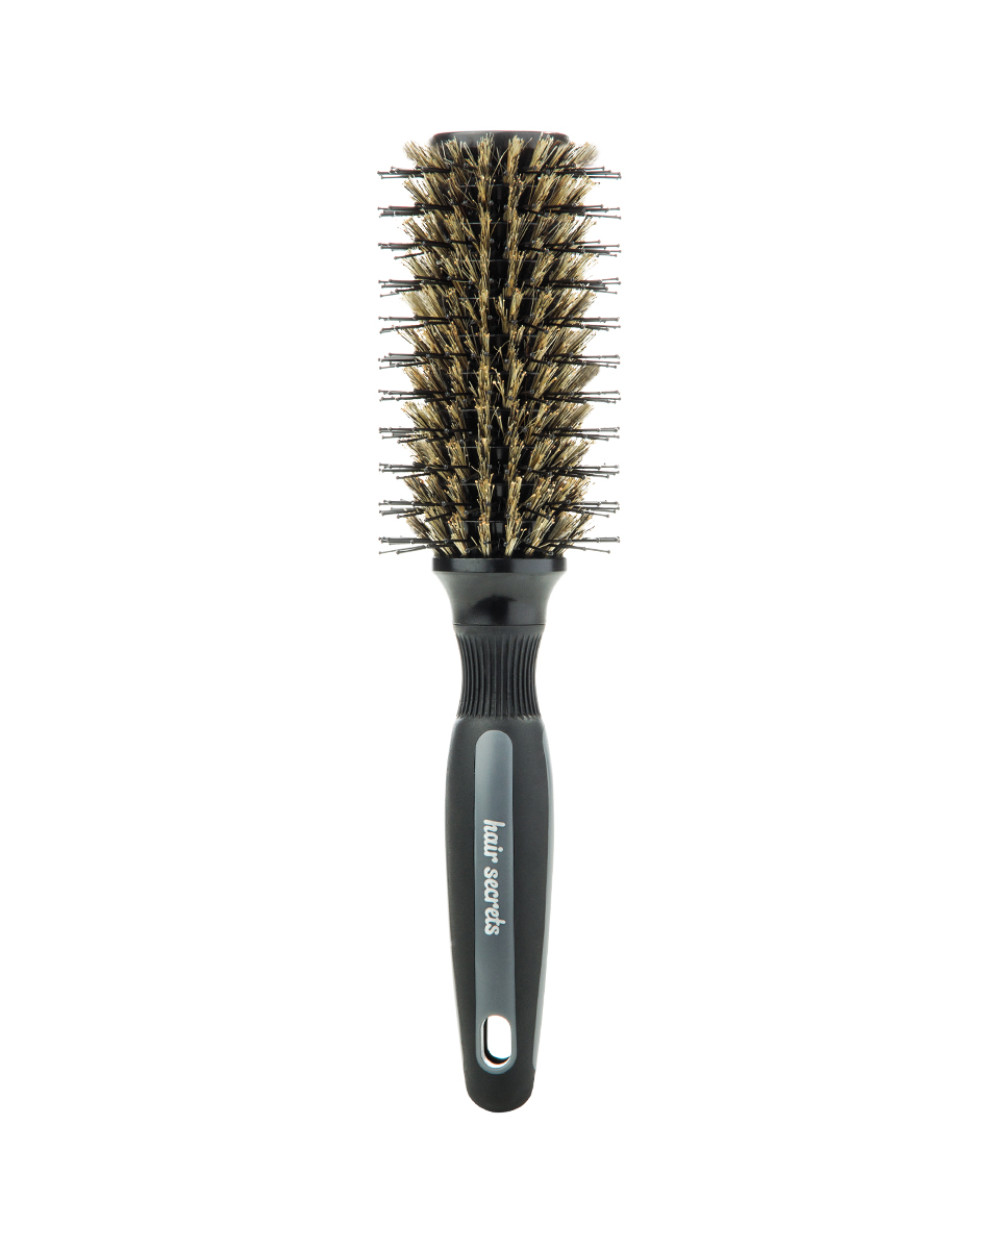 https://files.sirclocdn.xyz/kaycollection/products/_180621150352_9866755000_2_zoom.jpg